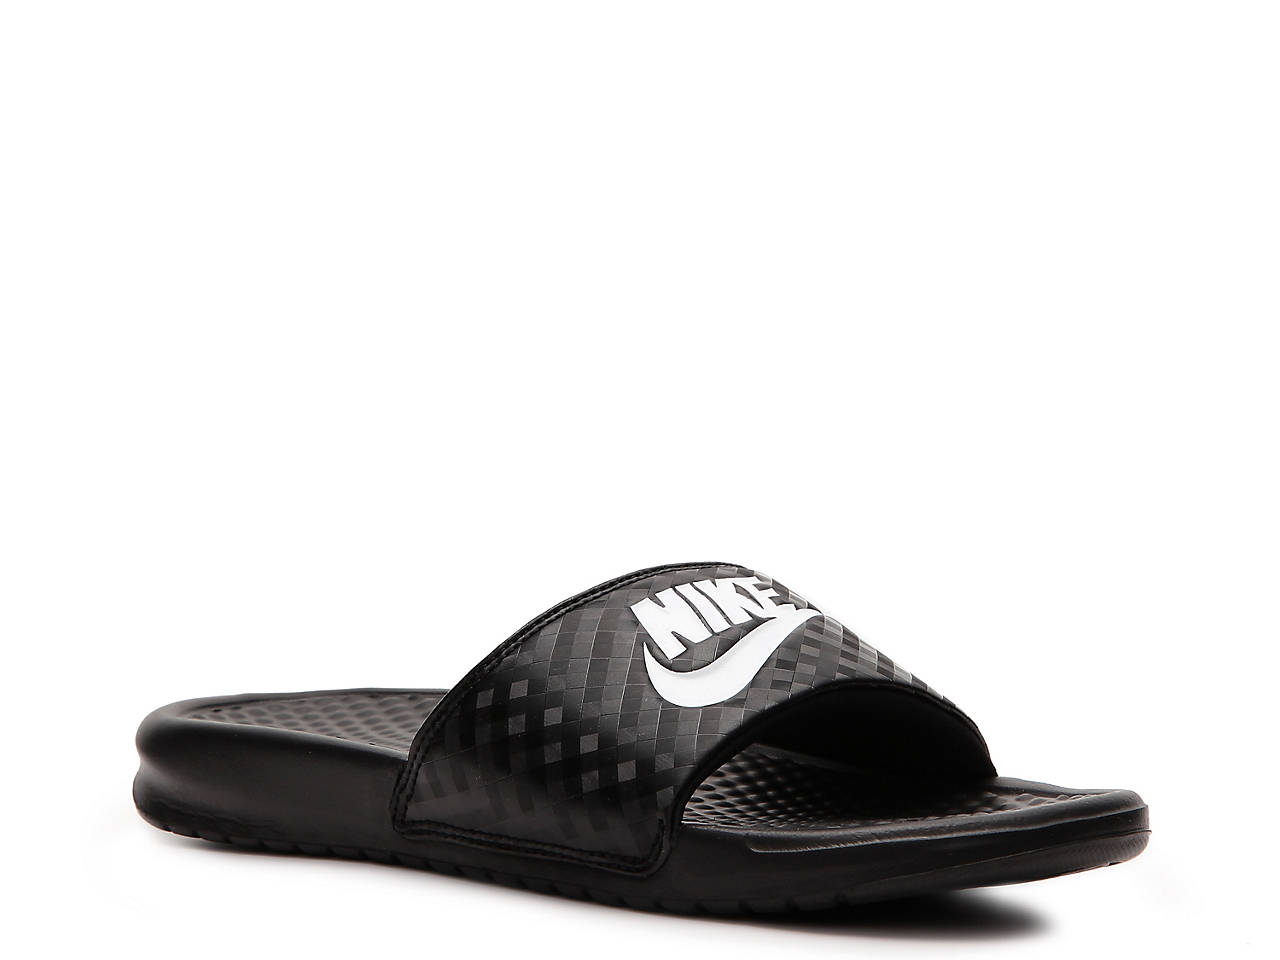 7bdc30dca1ab Nike Benassi Slide Sandal - Women s Women s Shoes